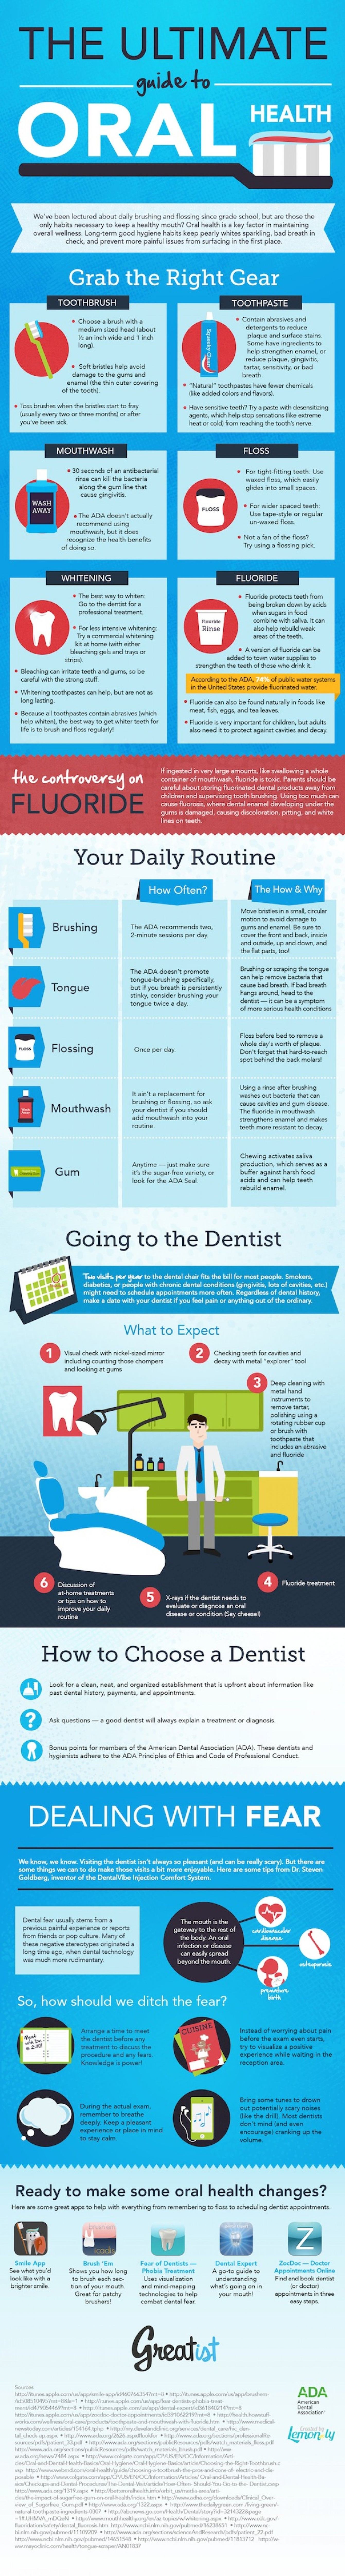 The Ultimate Guide to Oral Health Infographic